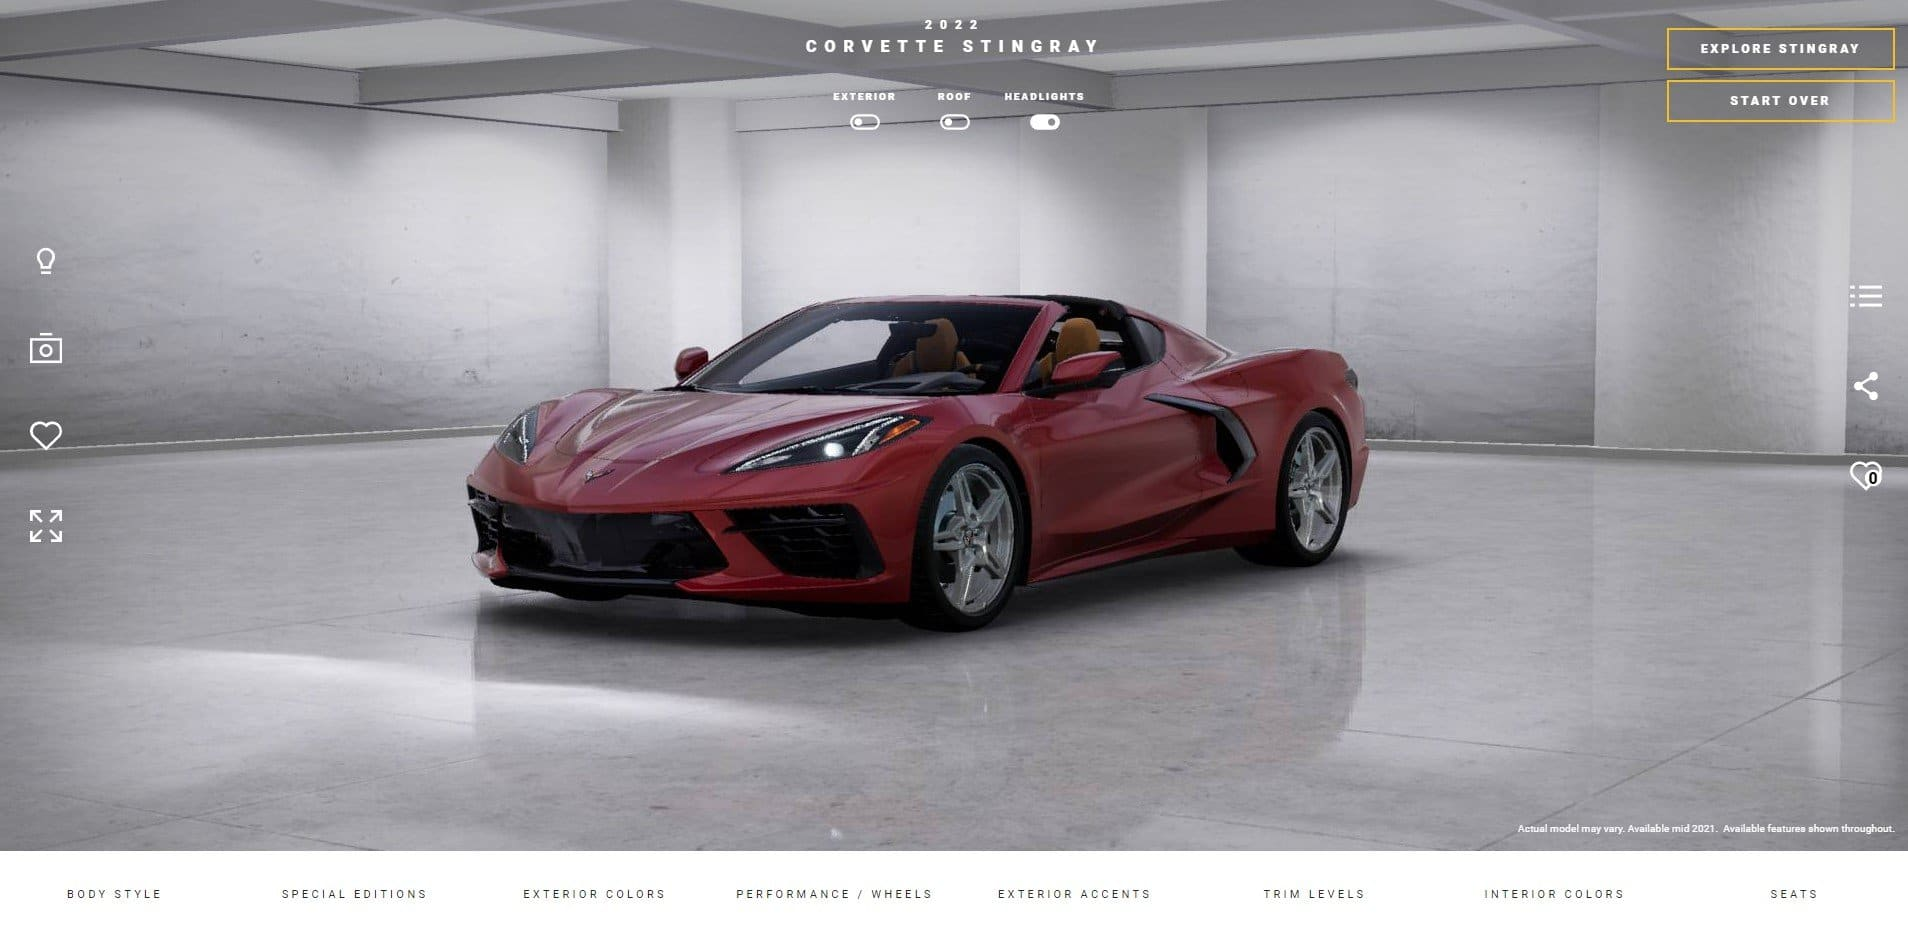 2022 Corvette Visualizer Tool is Now Live!